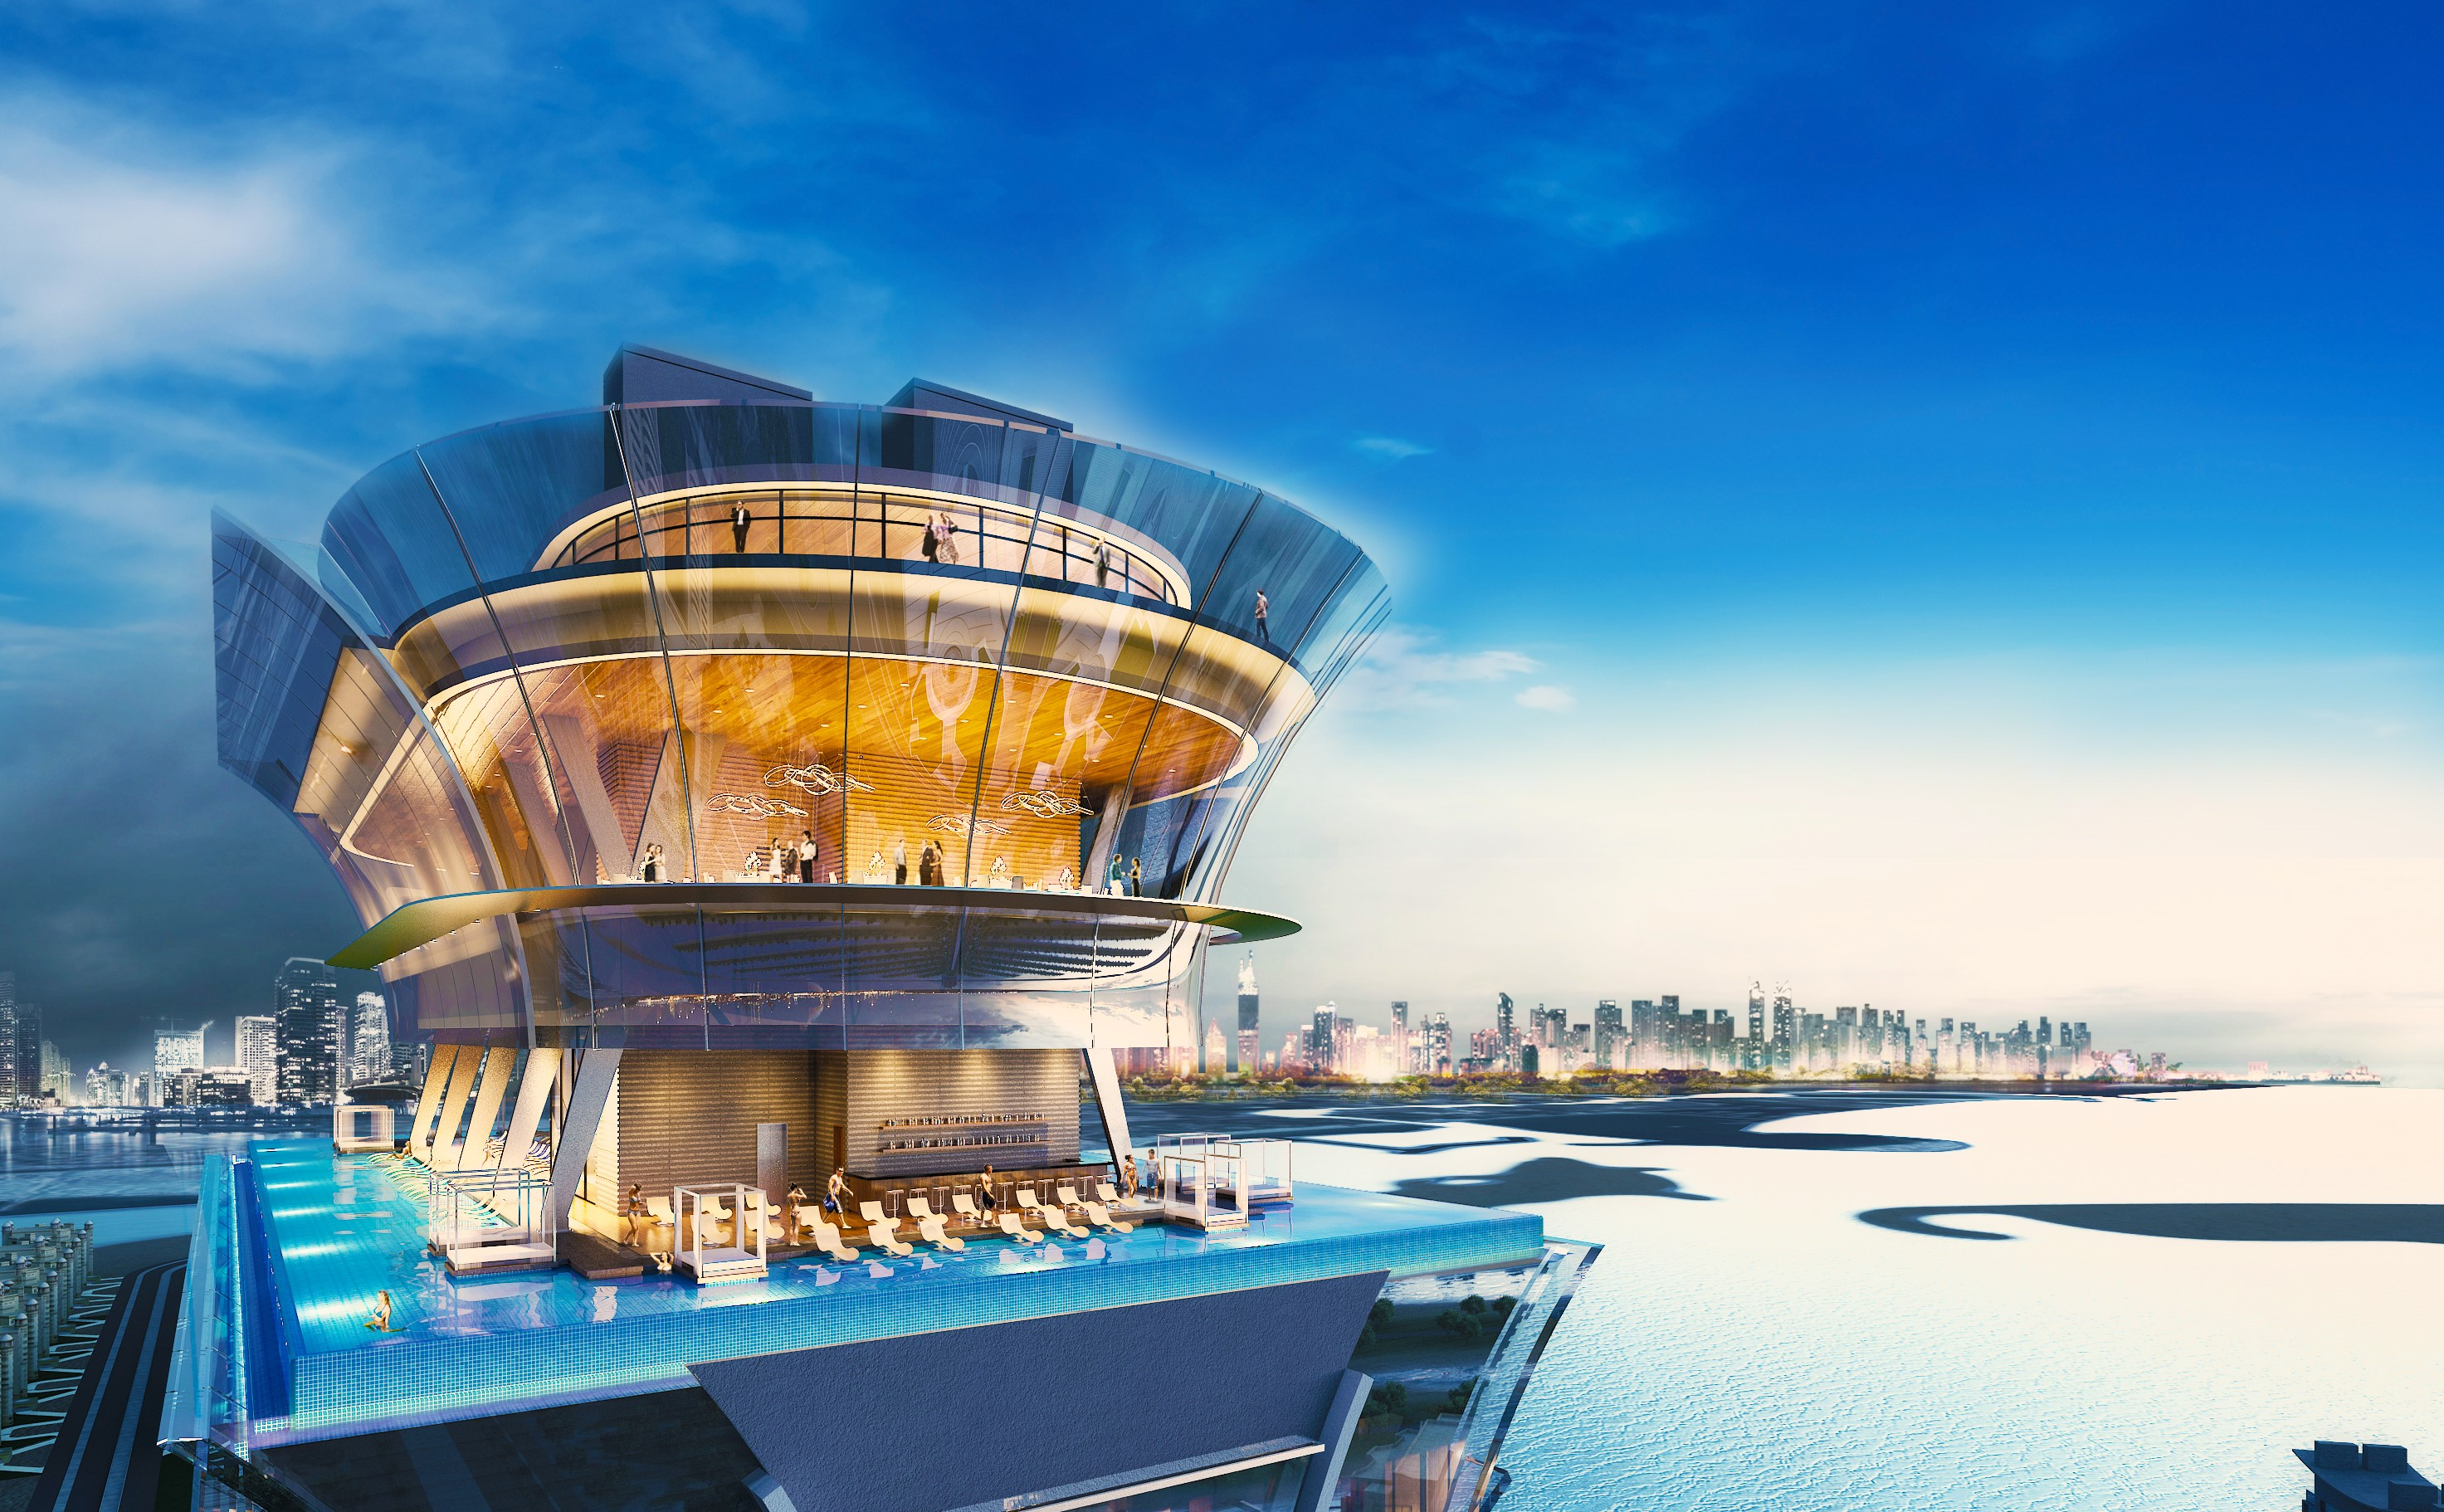 A 3D design of The Pointe's observation deck - The View in Dubai